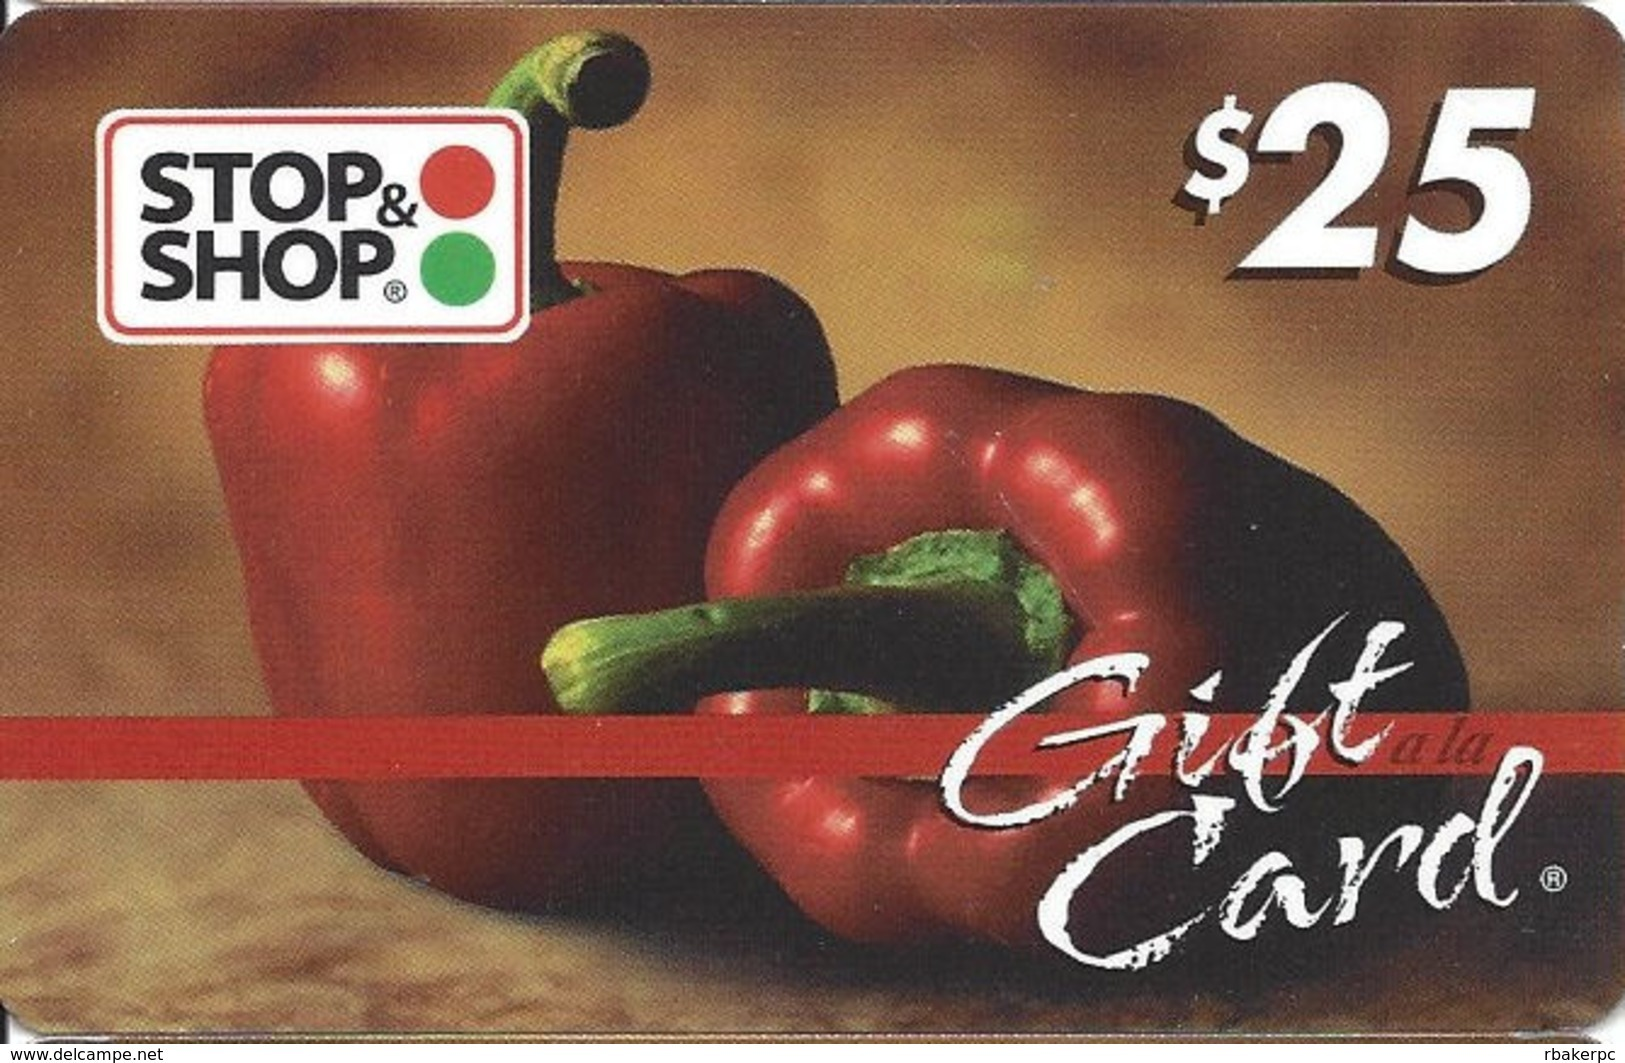 Stop & Shop Food Stores $25 Gift Card (No Actual Cash Value) - Gift Cards